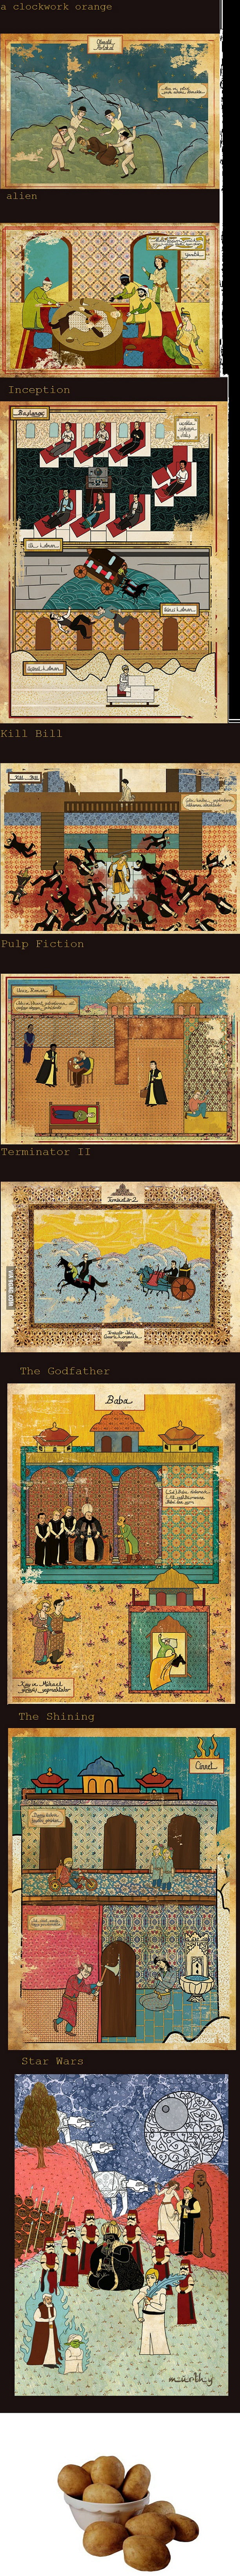 Famous movies in ancient turkish style!